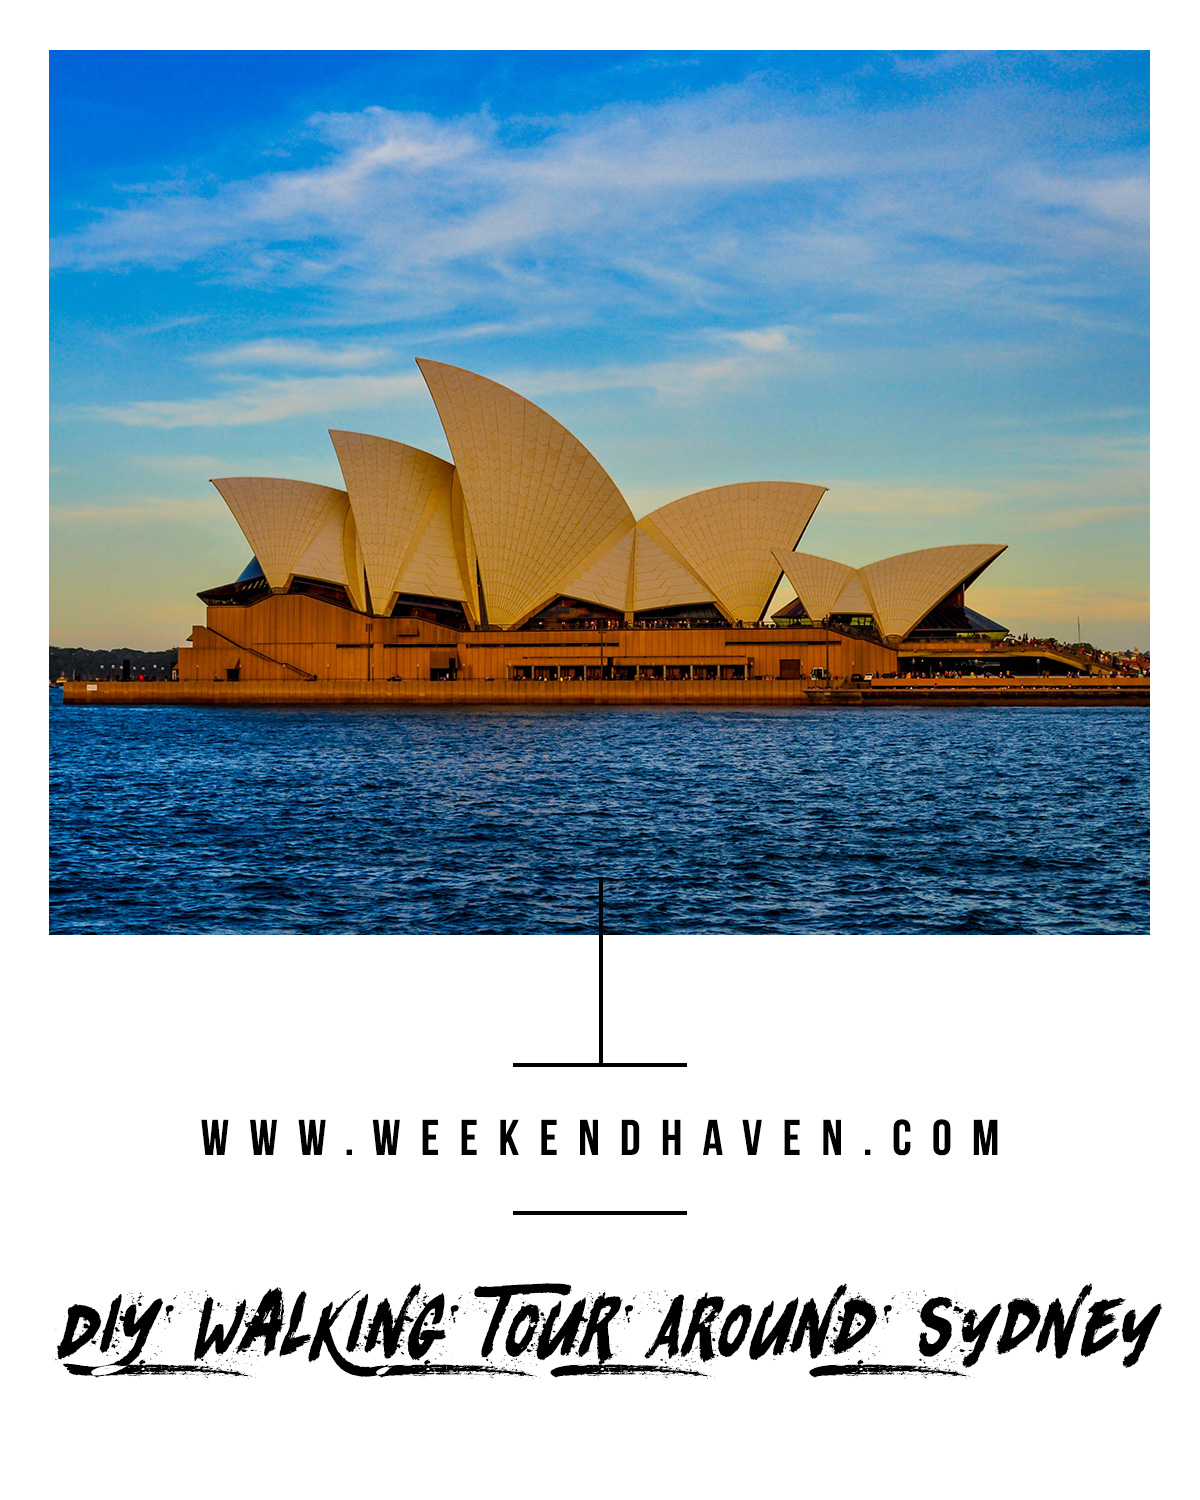 DIY Walking Tour Around Sydney || Weekend Haven || Budget Travel to Sydney #sydneyoperahouse